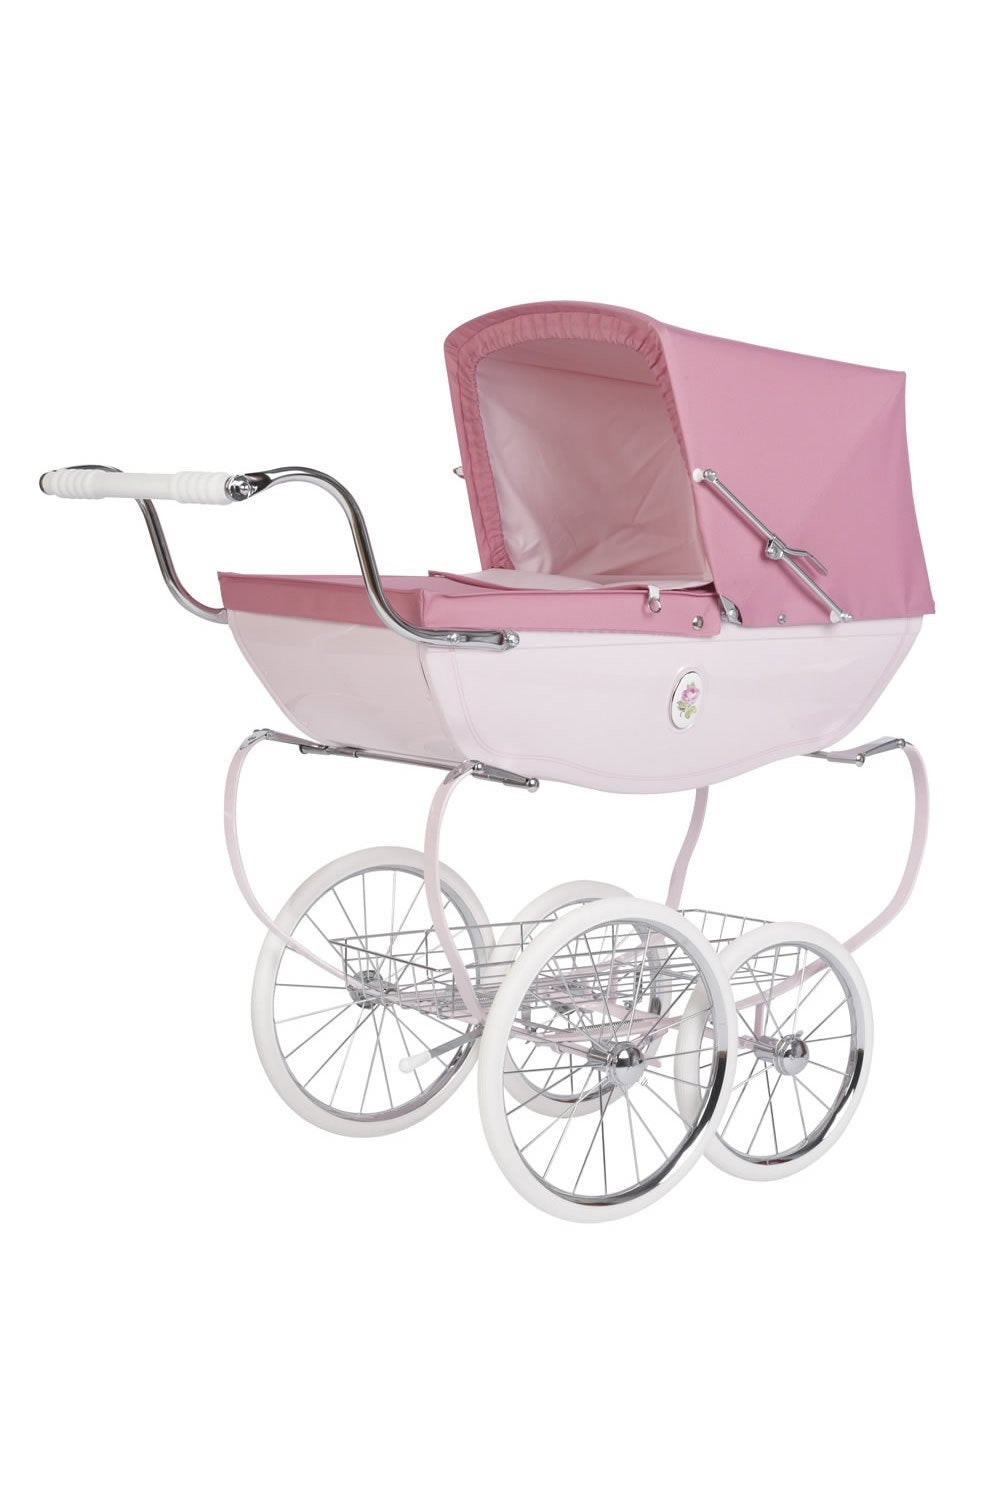 Chatsworth Doll's Pram Pink Rose